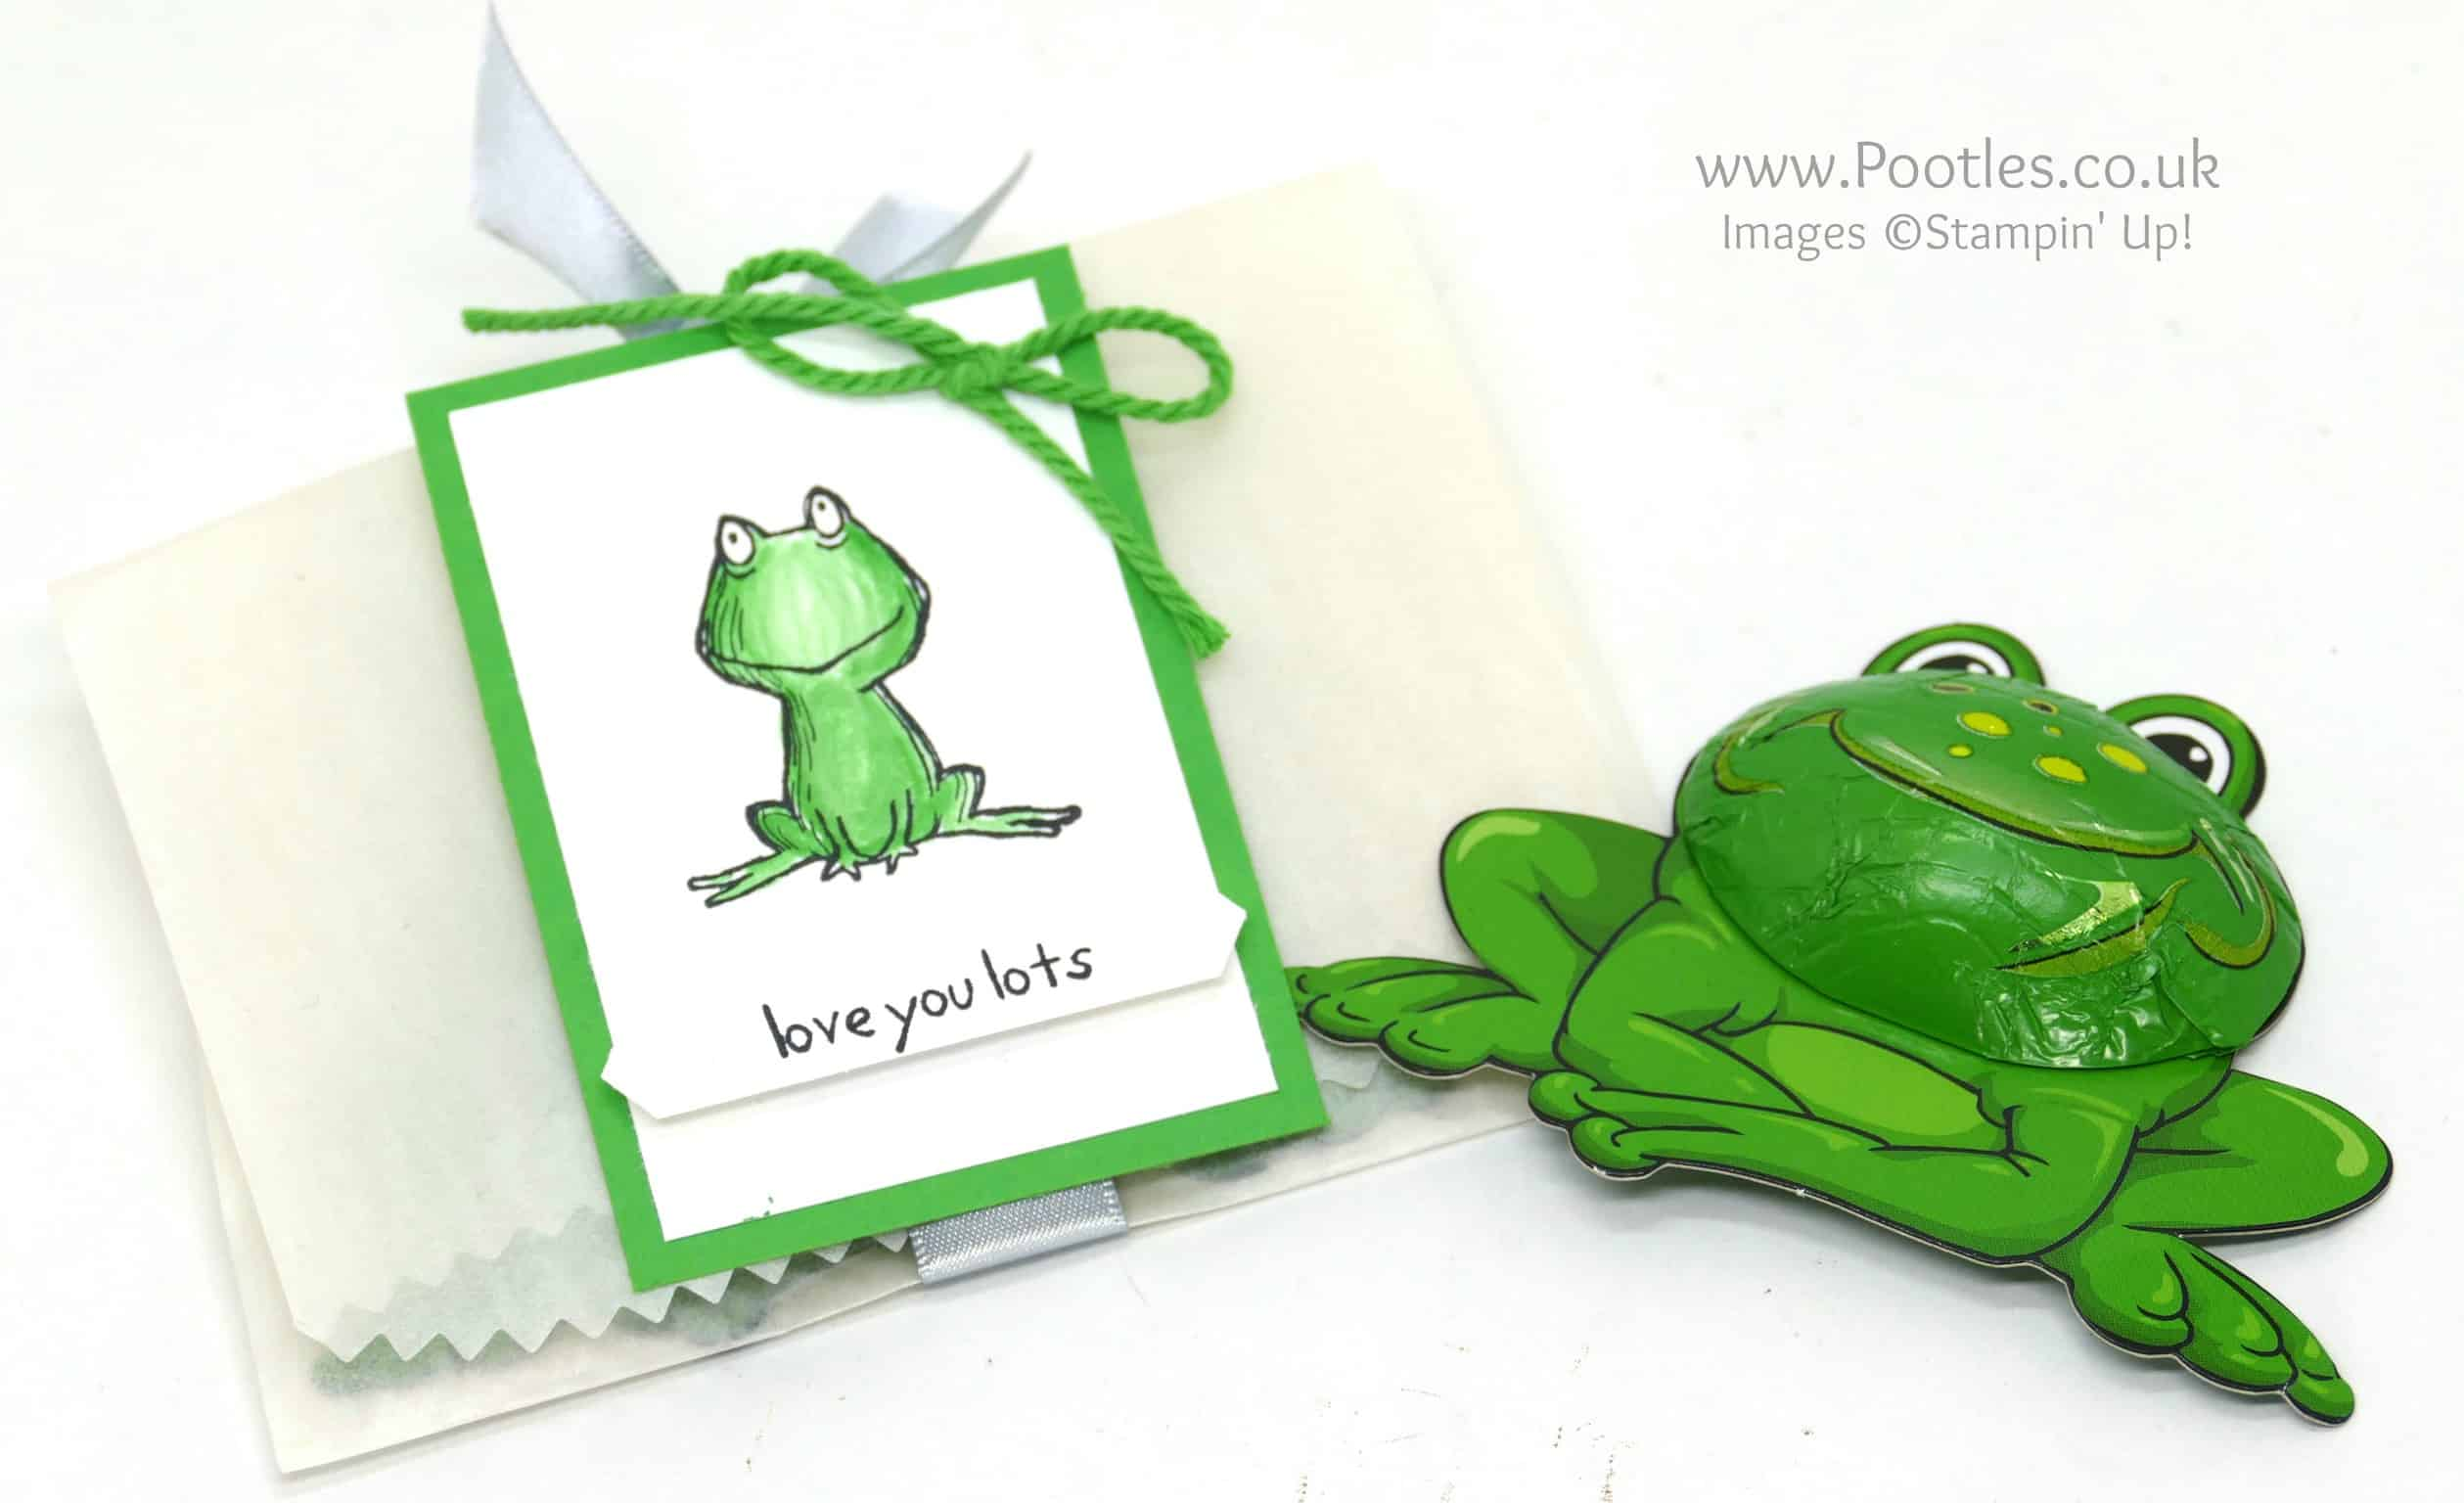 Oliver's Chocolate Frogs – Love You Lots!